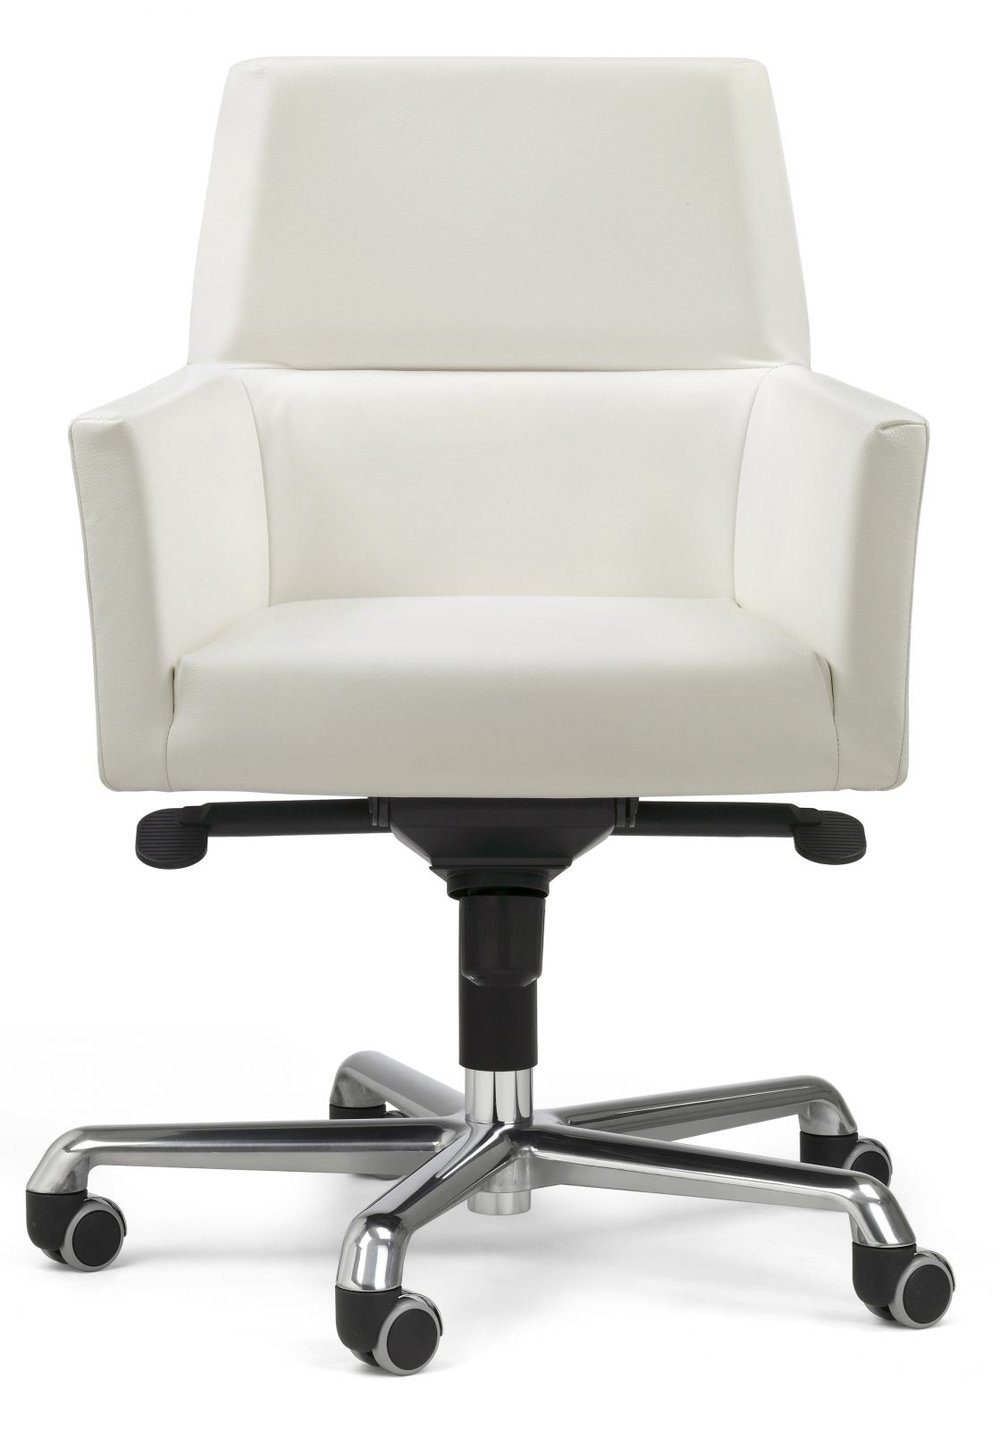 modern-office-chairs-Italian-furniture-designer-chairs (17).jpg